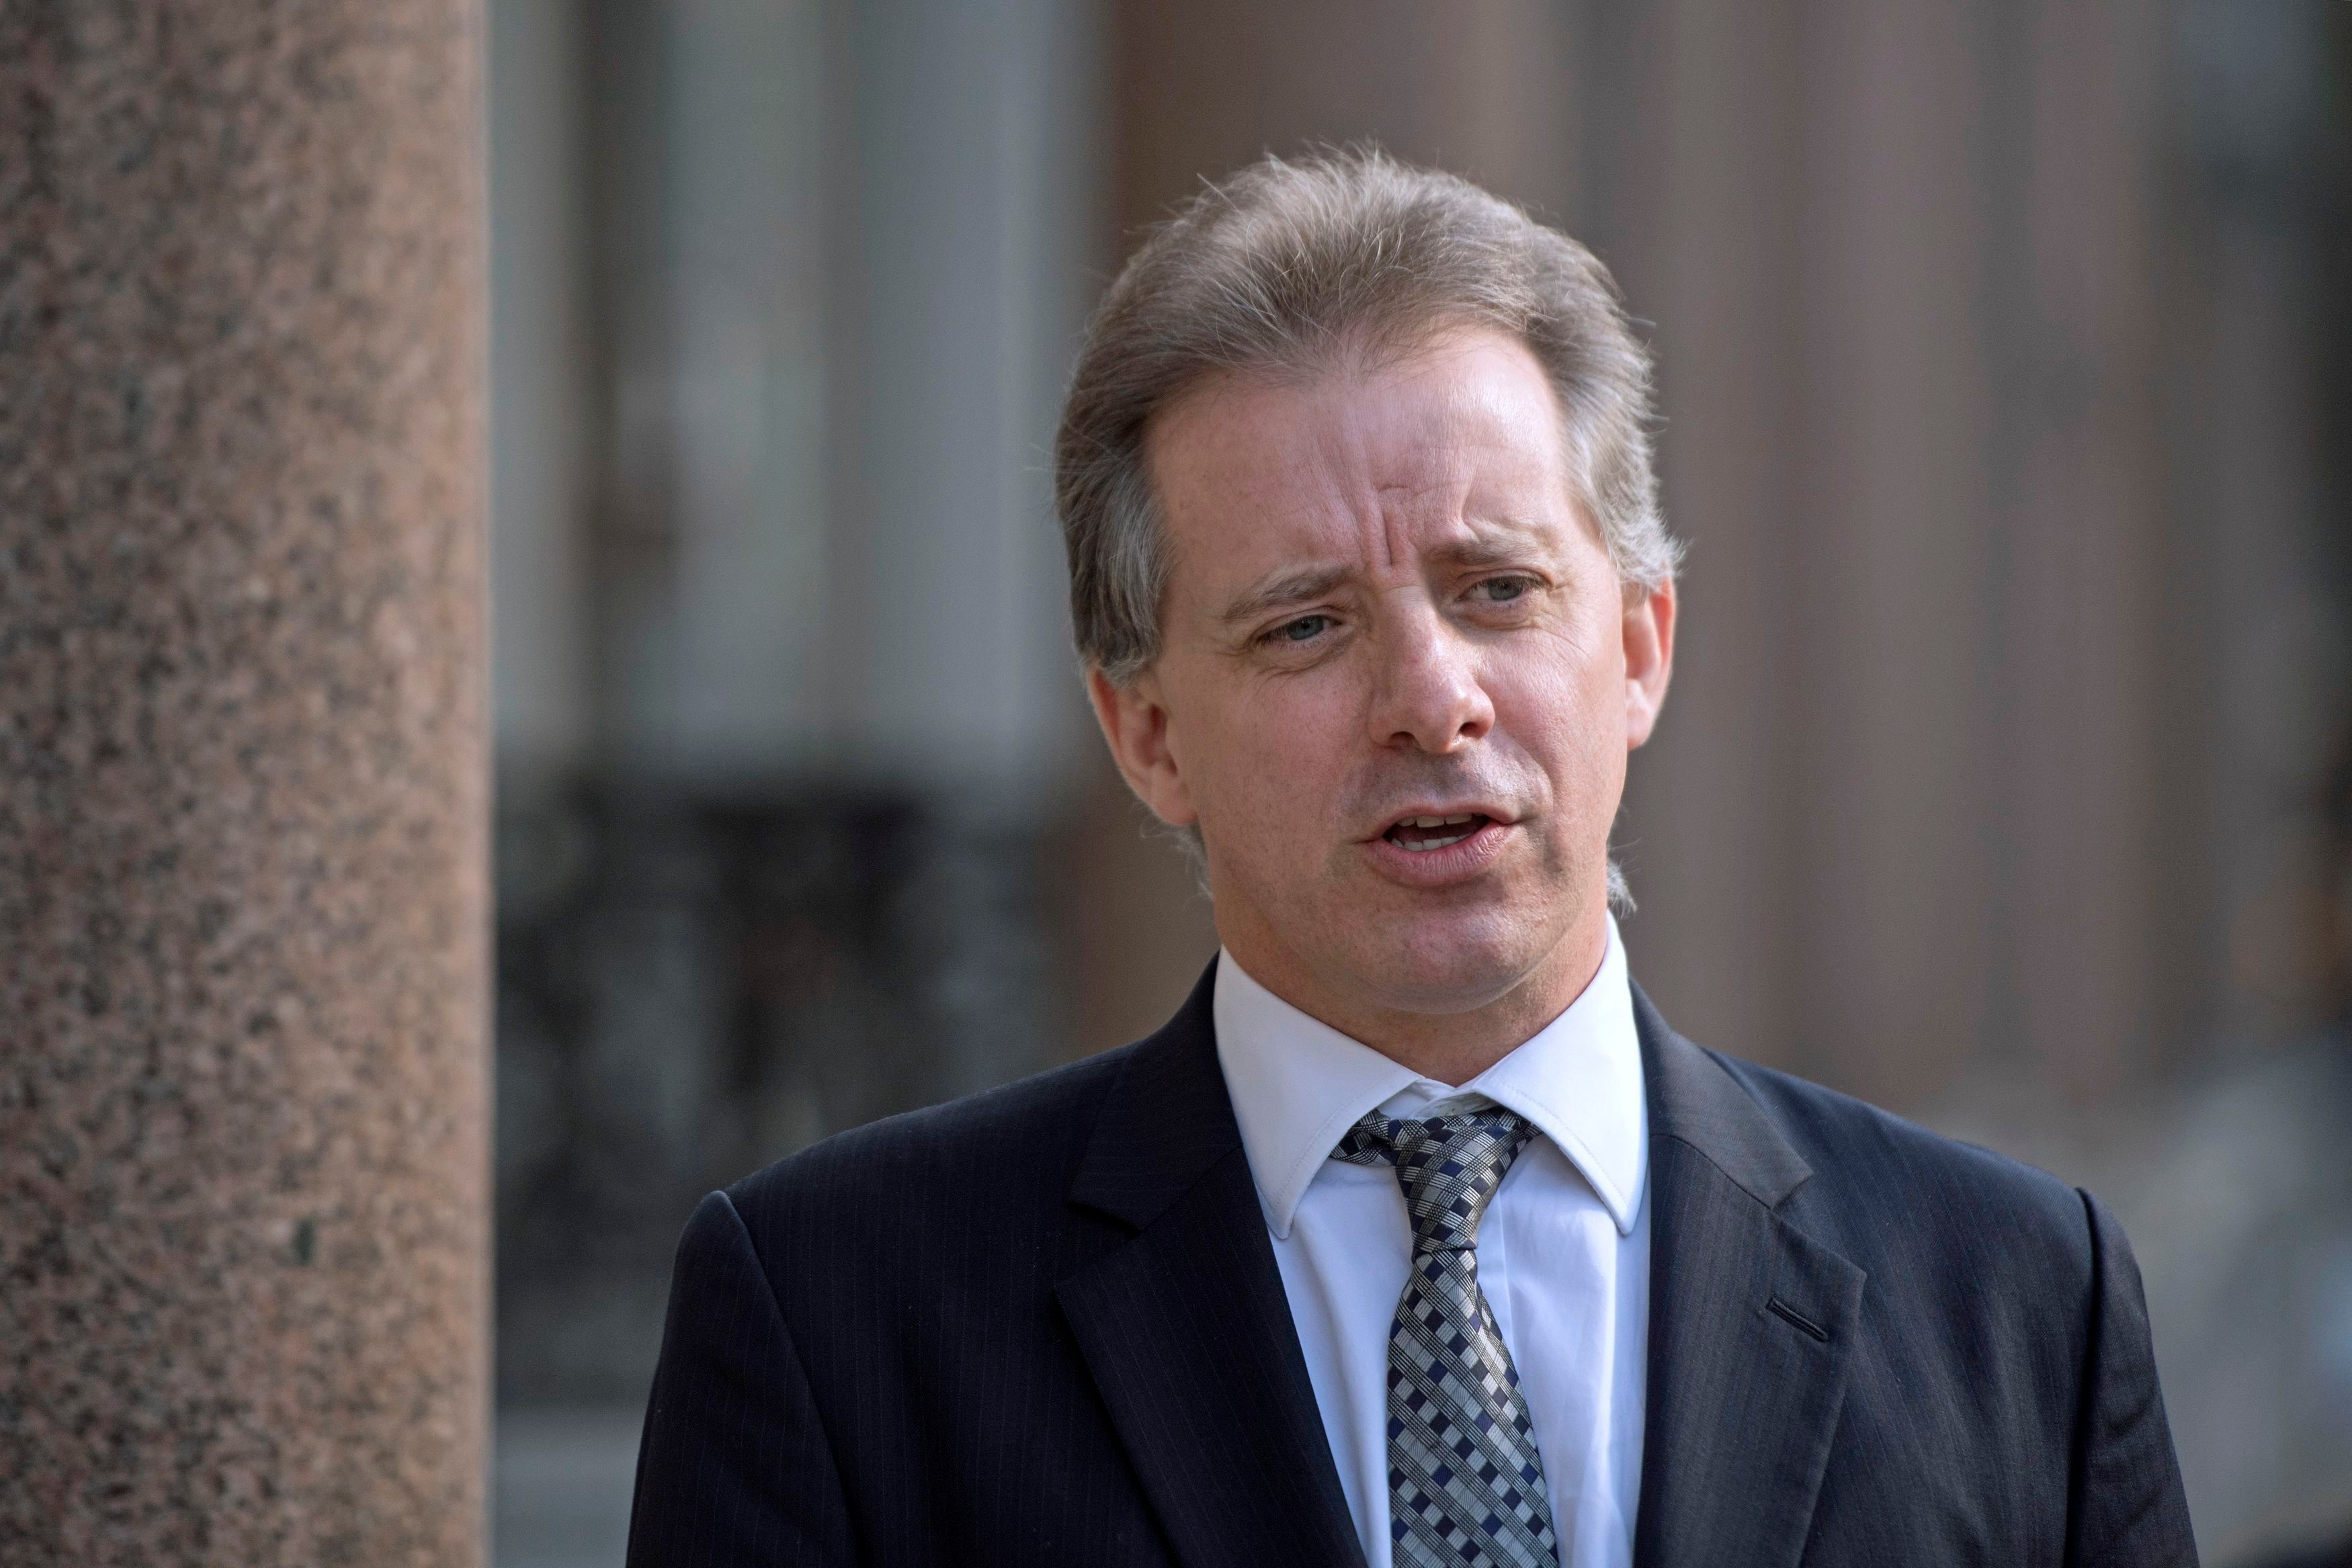 The Senate Judiciary Committee has recommended thatChristopher Steele be investigated.